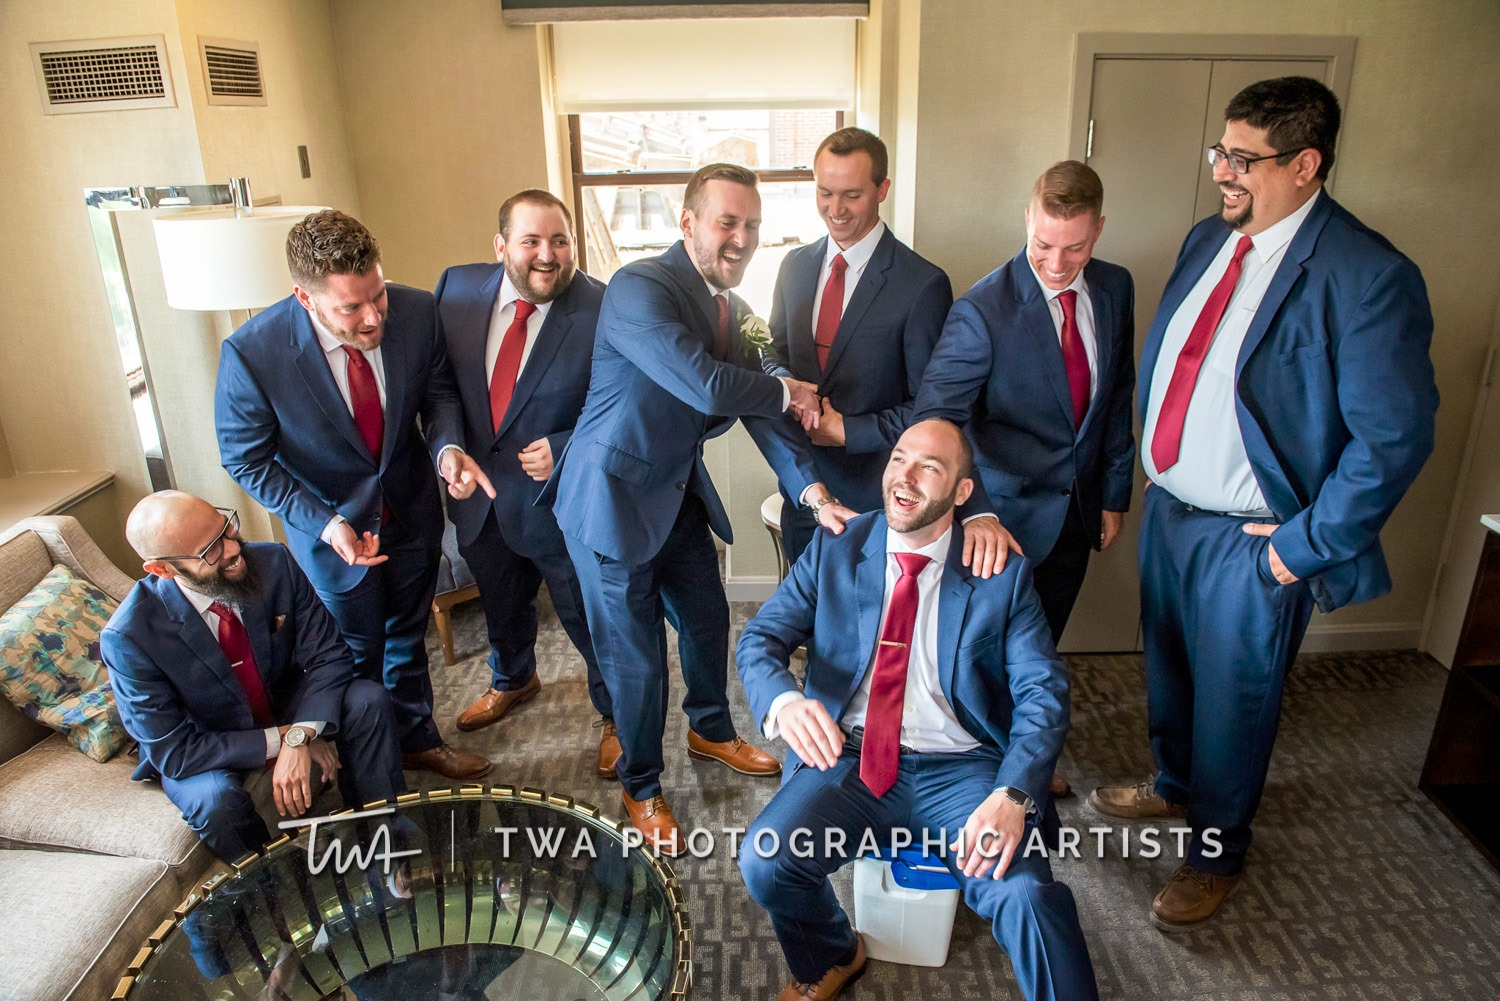 Chicago-Wedding-Photographer-TWA-Photographic-Artists-White-Pines-Banquets_Petersen_Sherman_ZZ_DL-008_0088